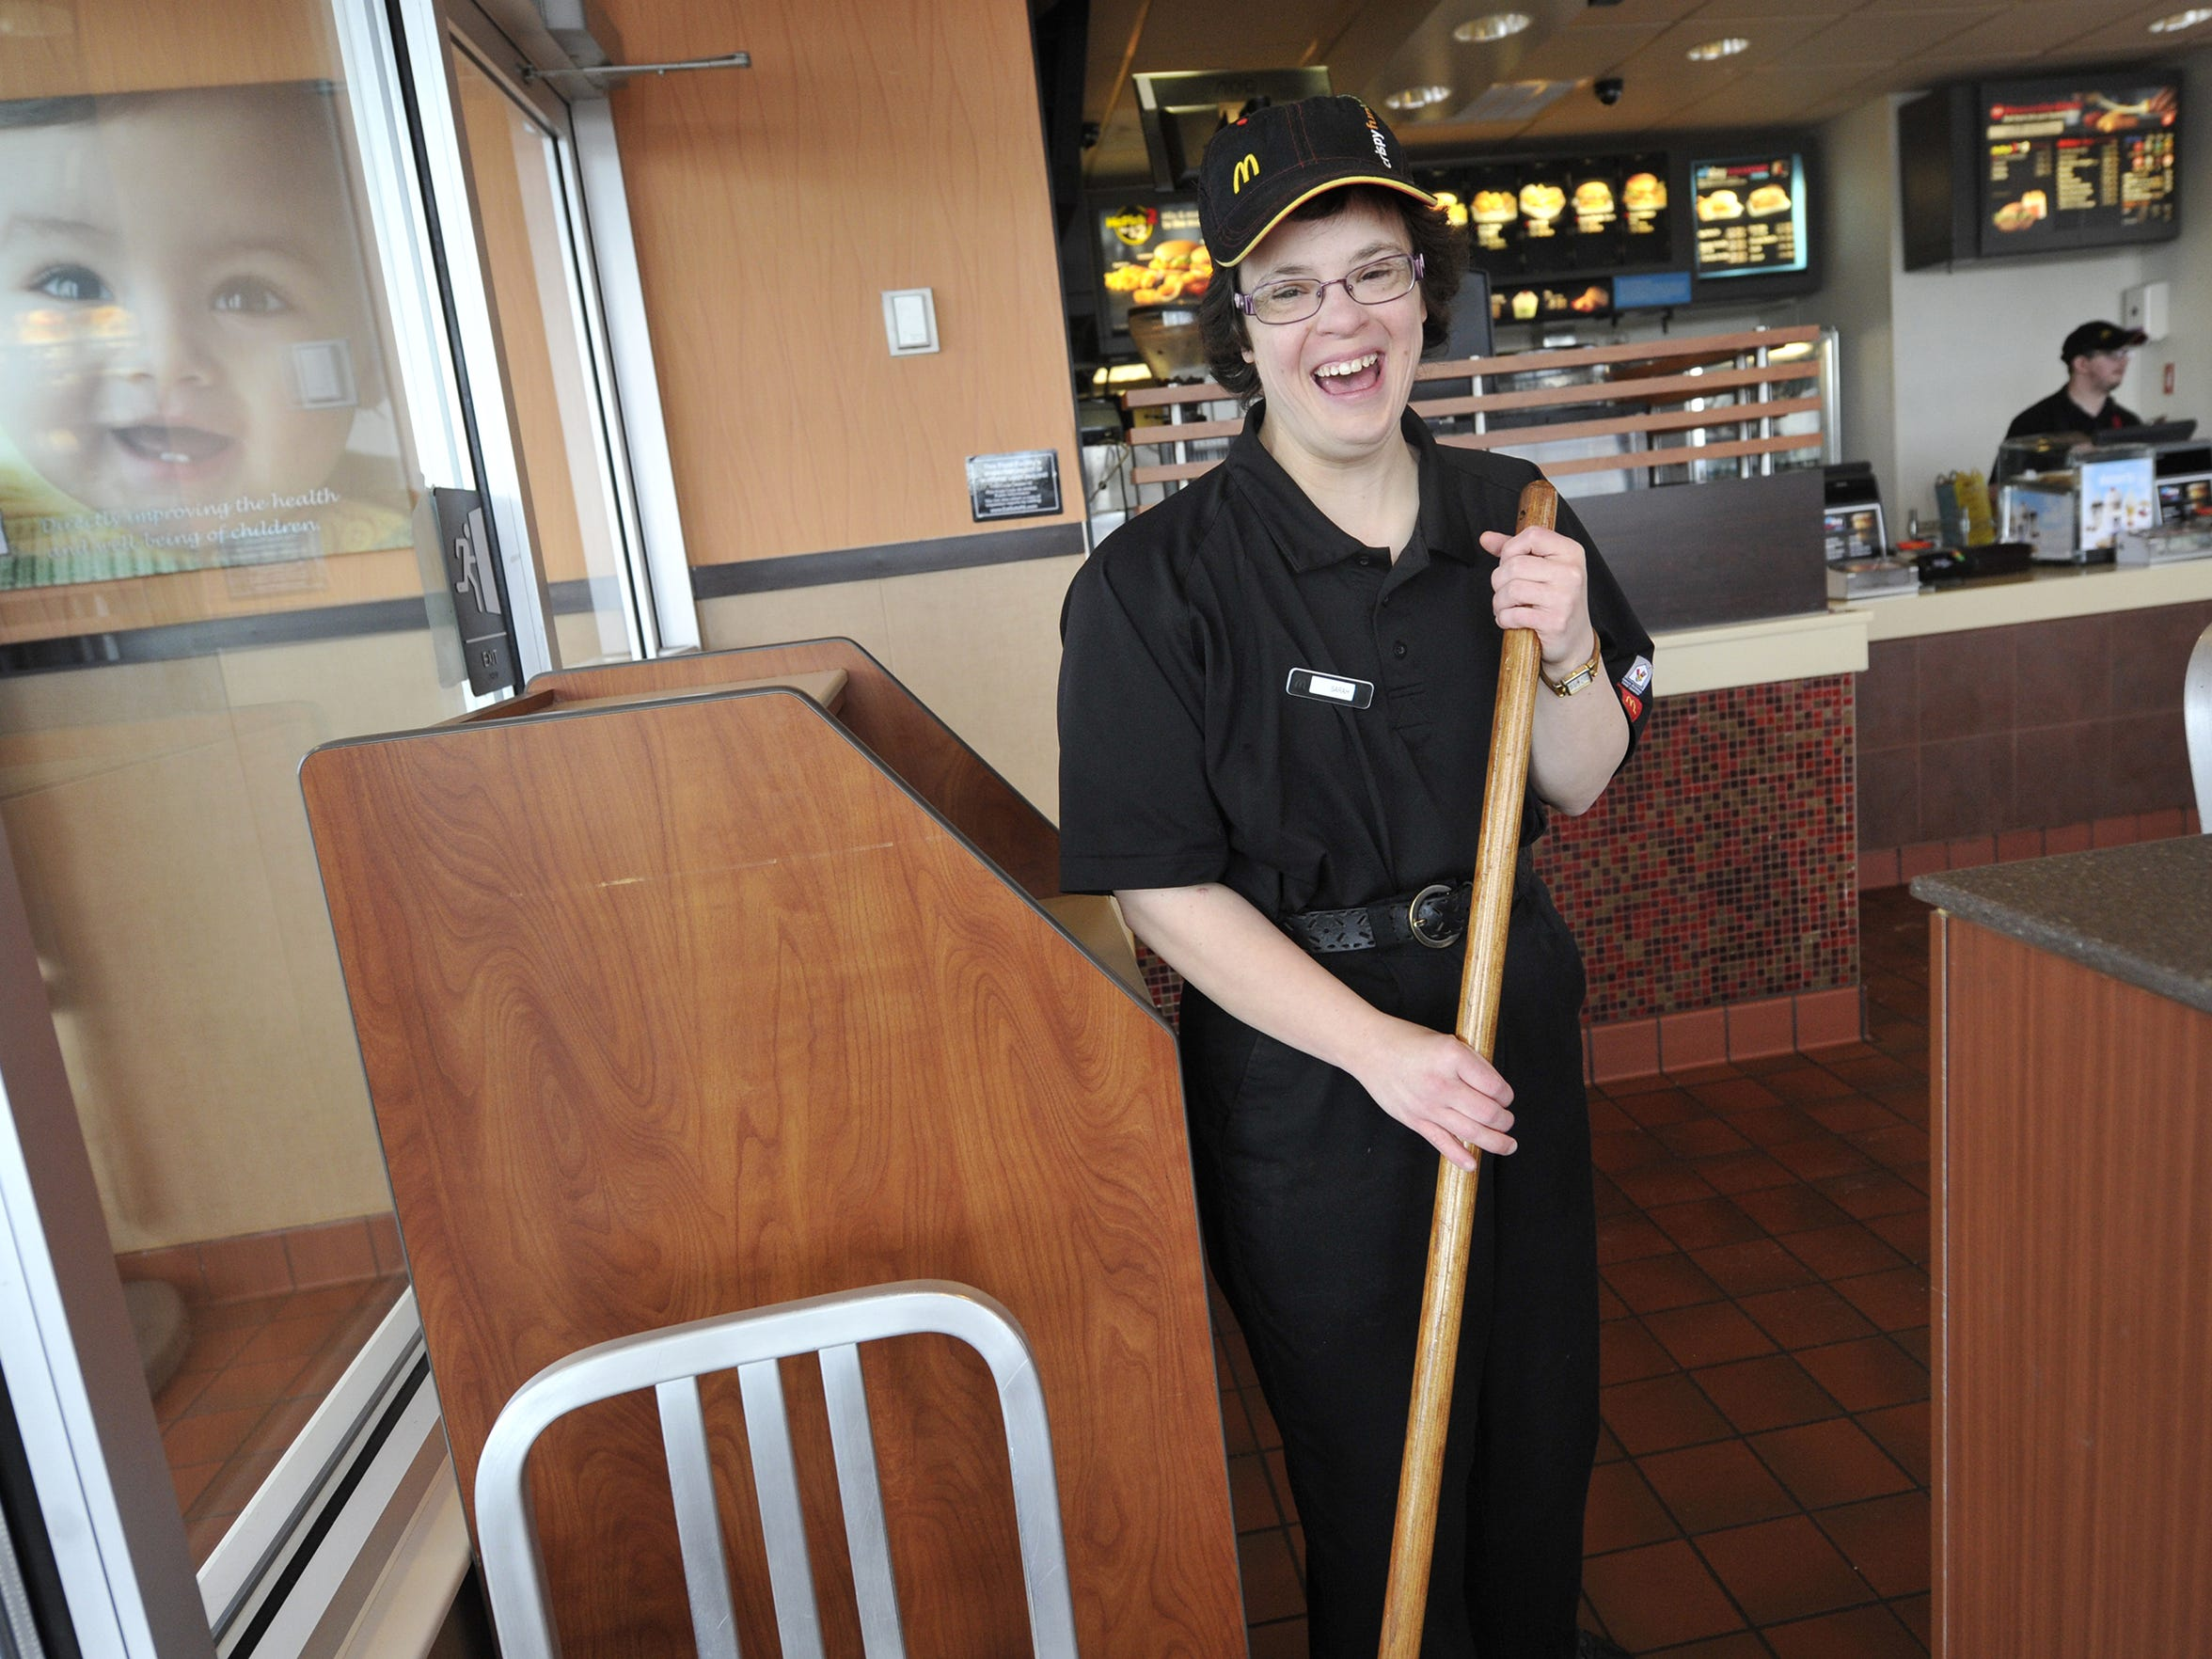 Sarah Keeney, 36, who has Down Syndrome, works at the McDonald's on Leaders Heights, reads at a second-grade level and can do simple chores. But she needs help with other life skills. Her mother, Suzanne Keim, had recently begun to worry about what would happen if she were no longer able to care for Sarah.